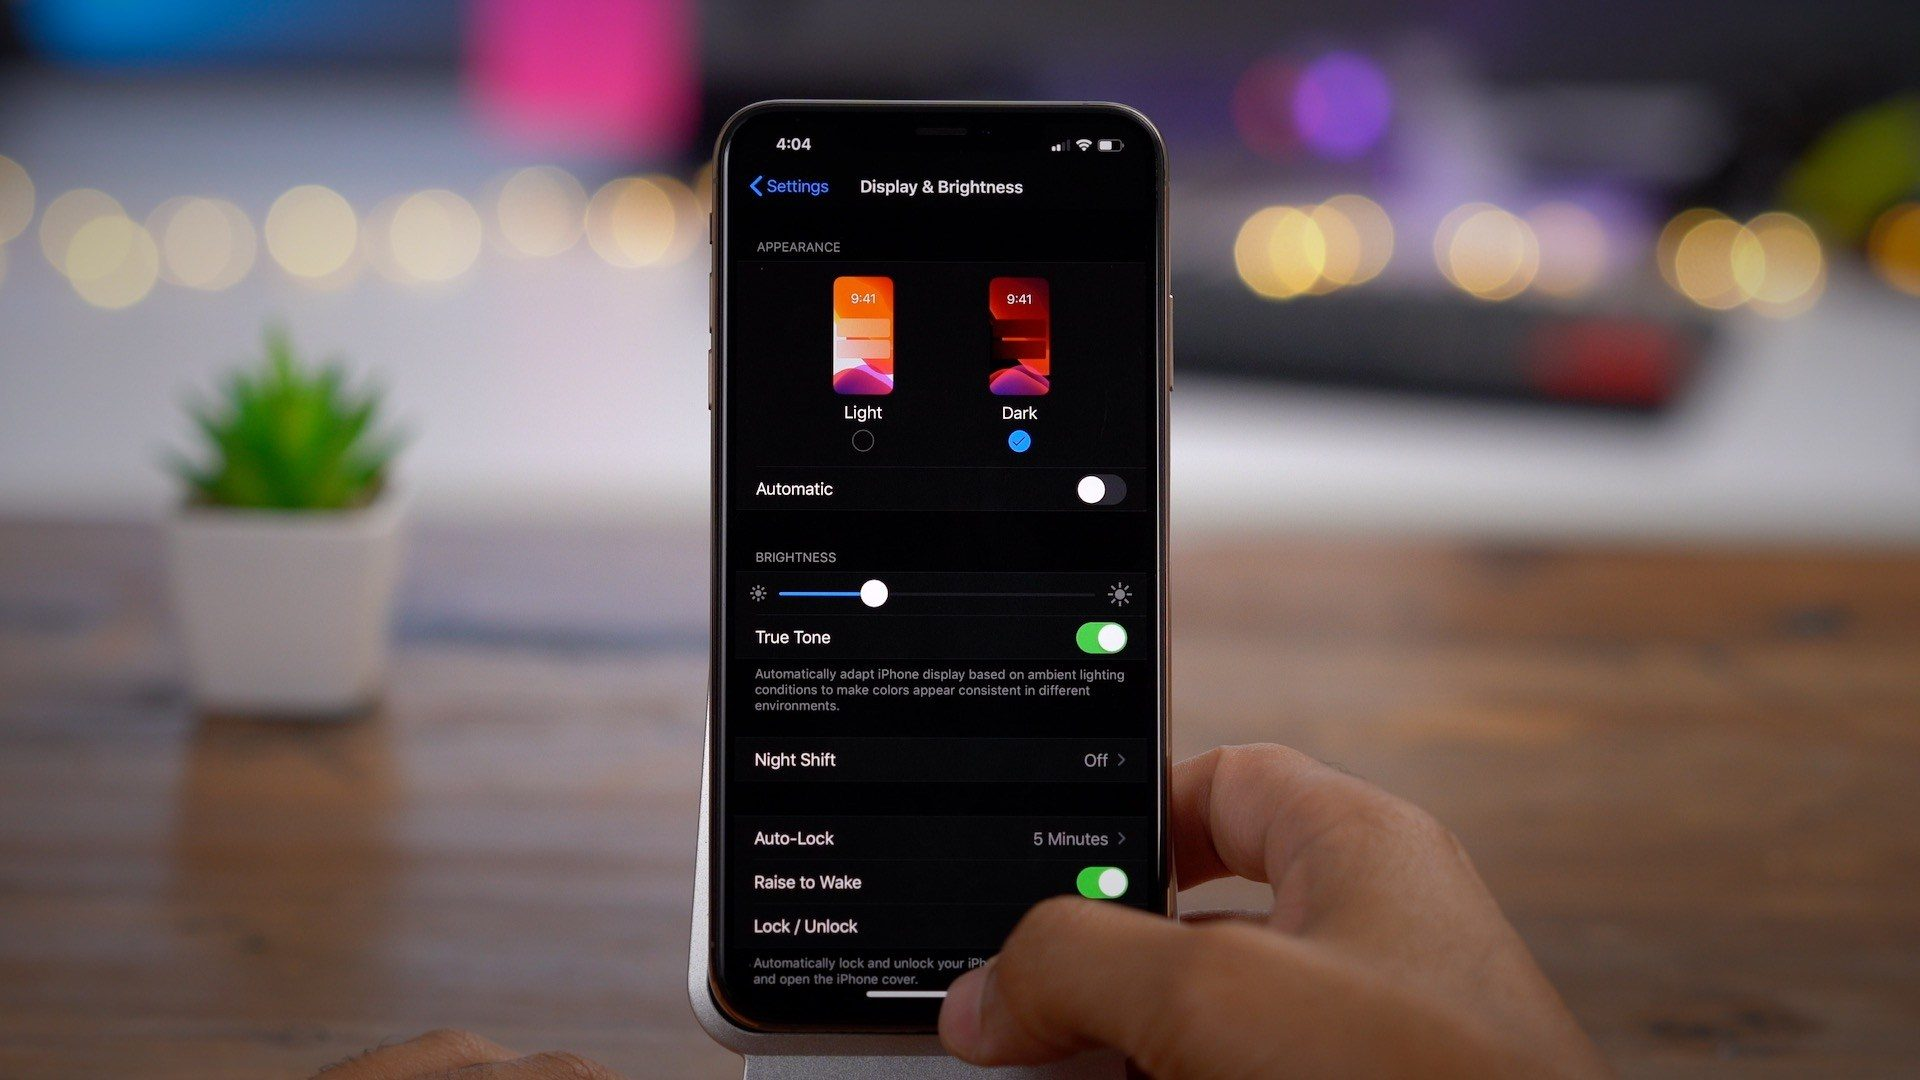 These iOS 13 apps work with Dark Mode, Sign in with Apple, Voice Control, and more